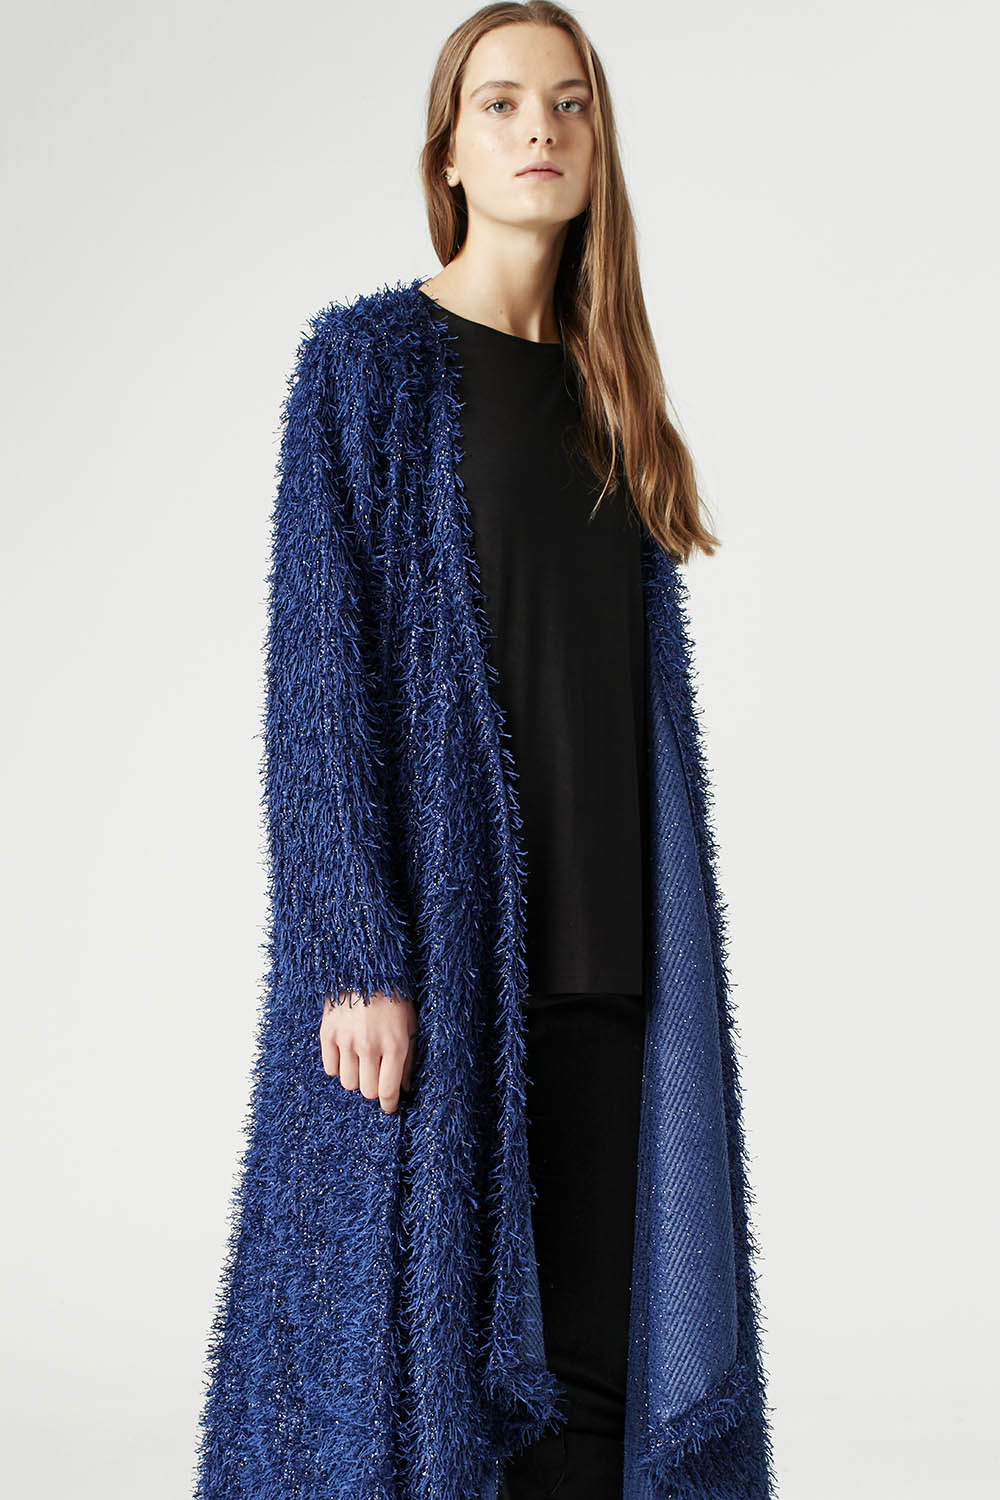 MIZALLE Tasseled Long Luxury Cardigan (Navy Blue) (1)